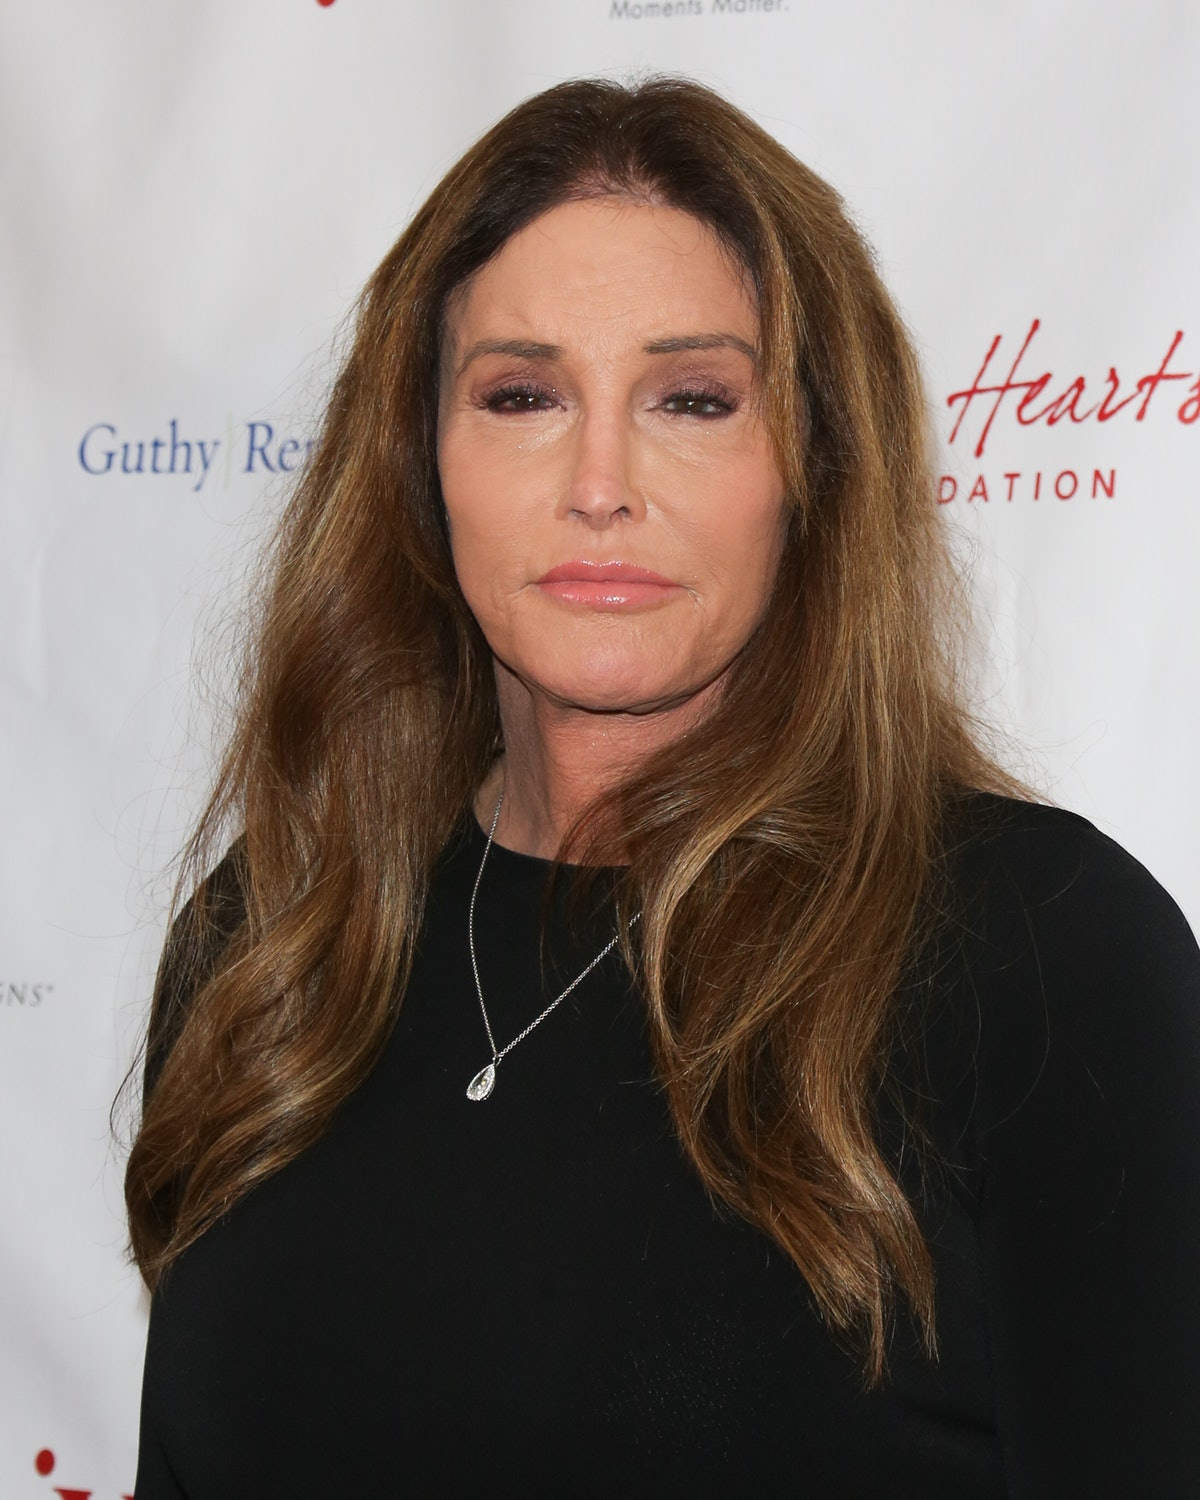 Caitlyn Jenner named one of the most ridiculous (bad) Scorpio celebrities.